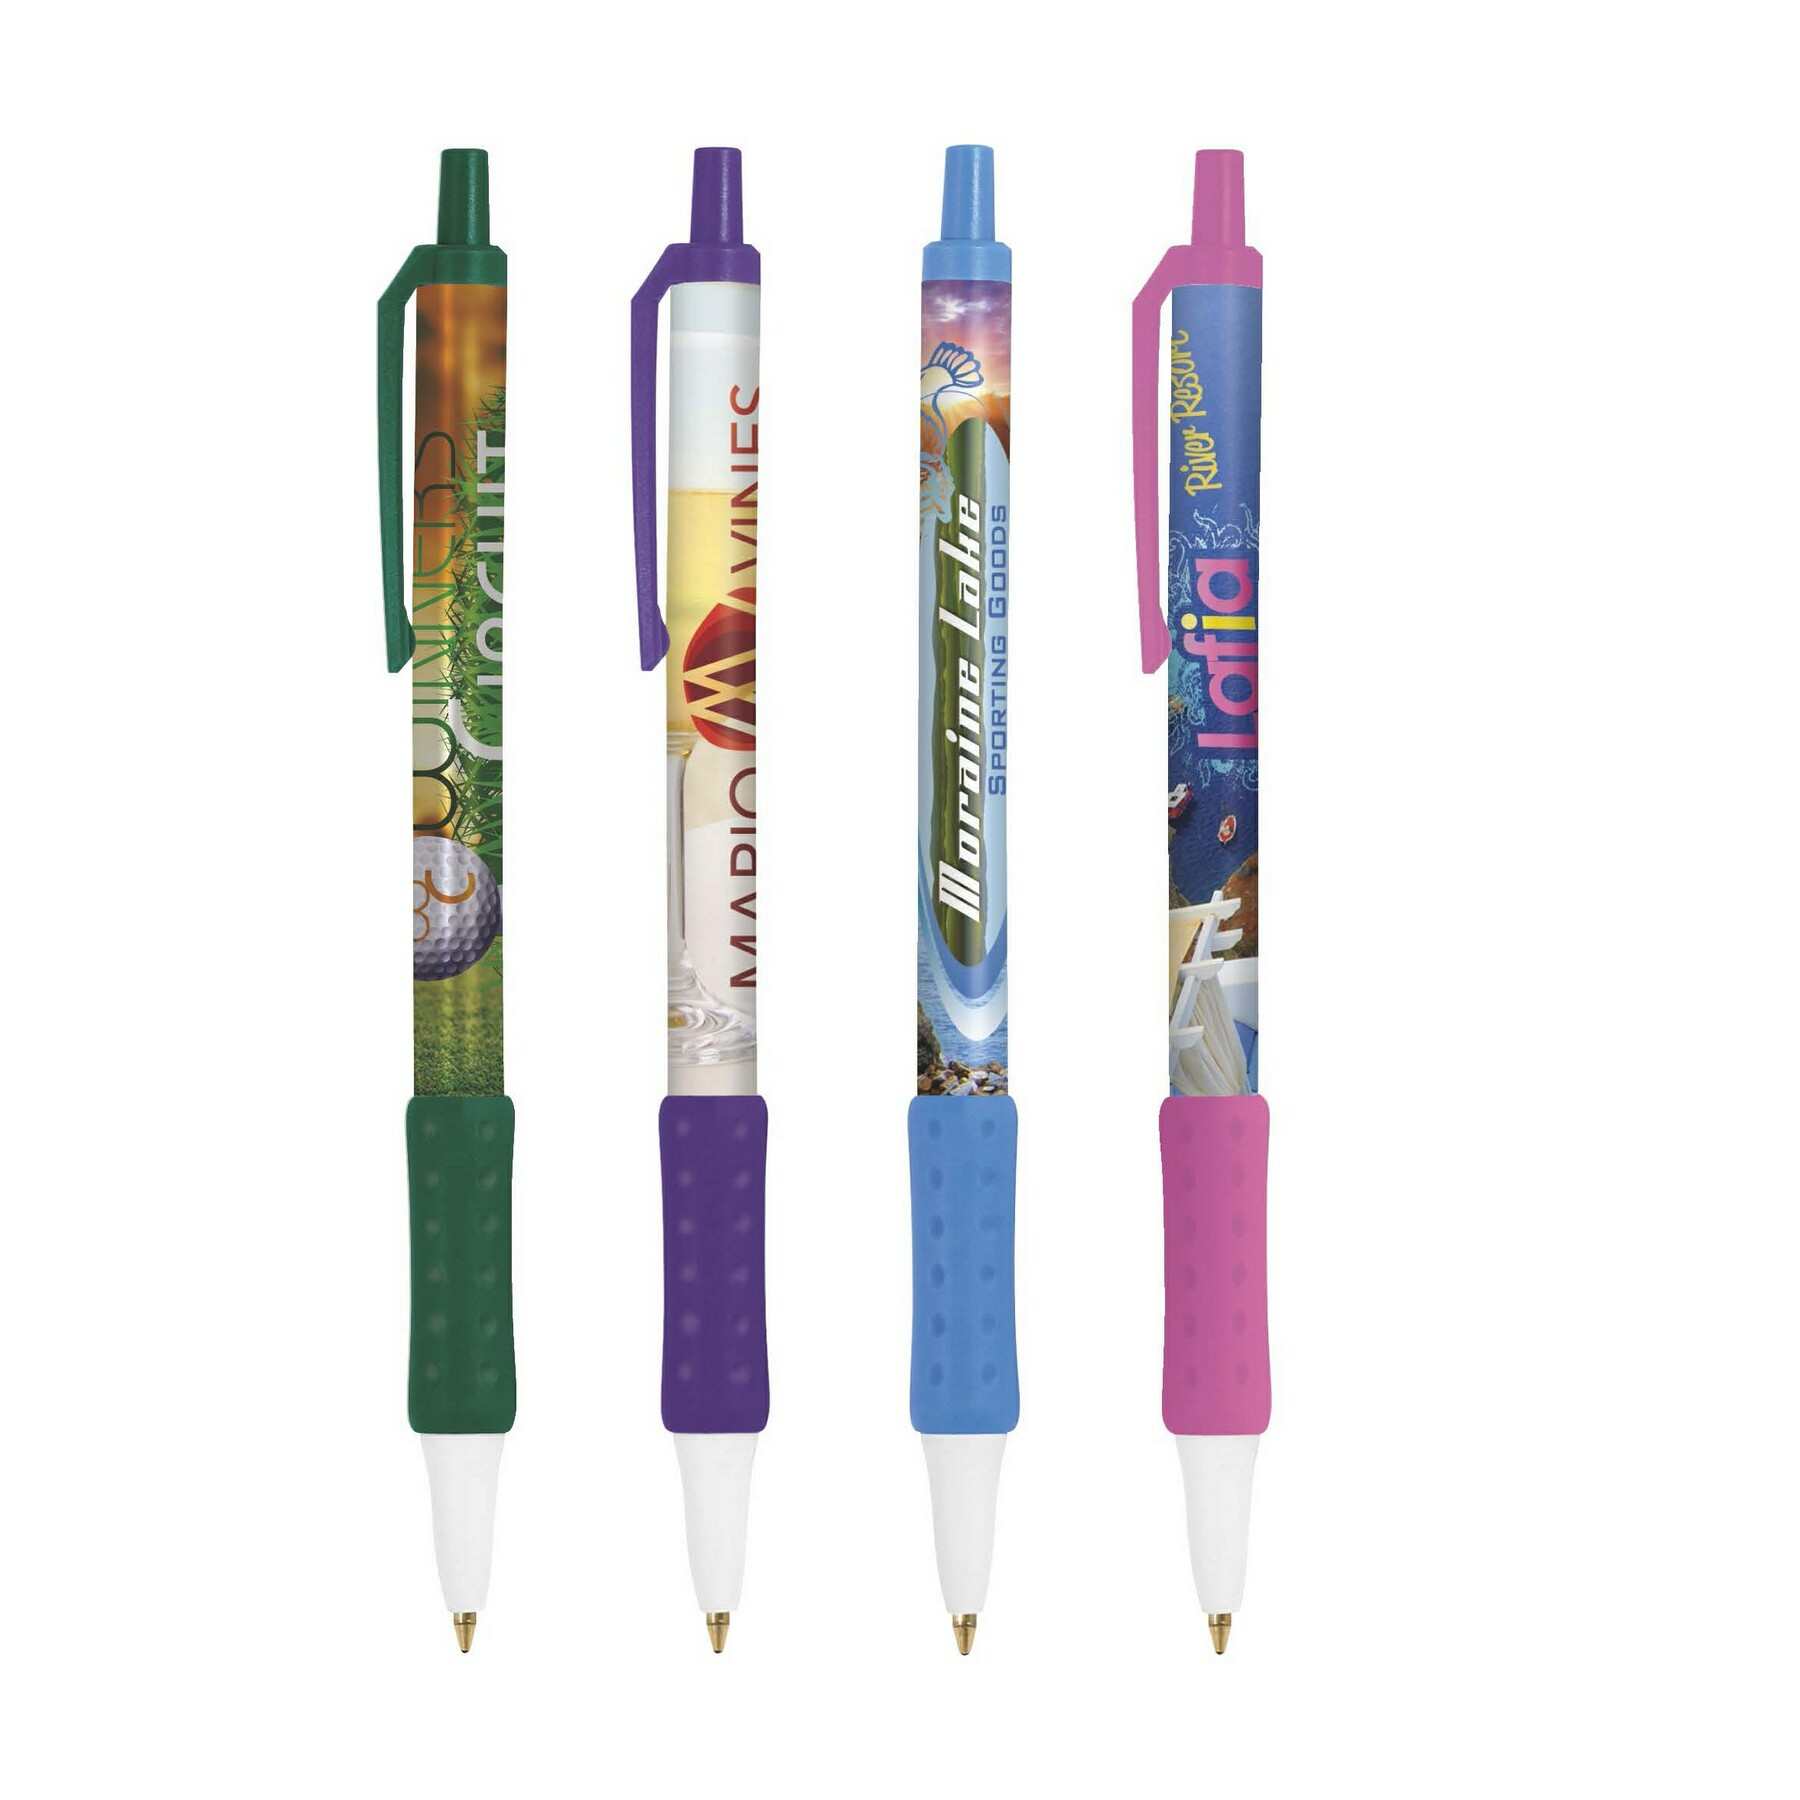 BIC Digital Clic Stic Grip Pen, #DCCSCG, Full Colour Imprint